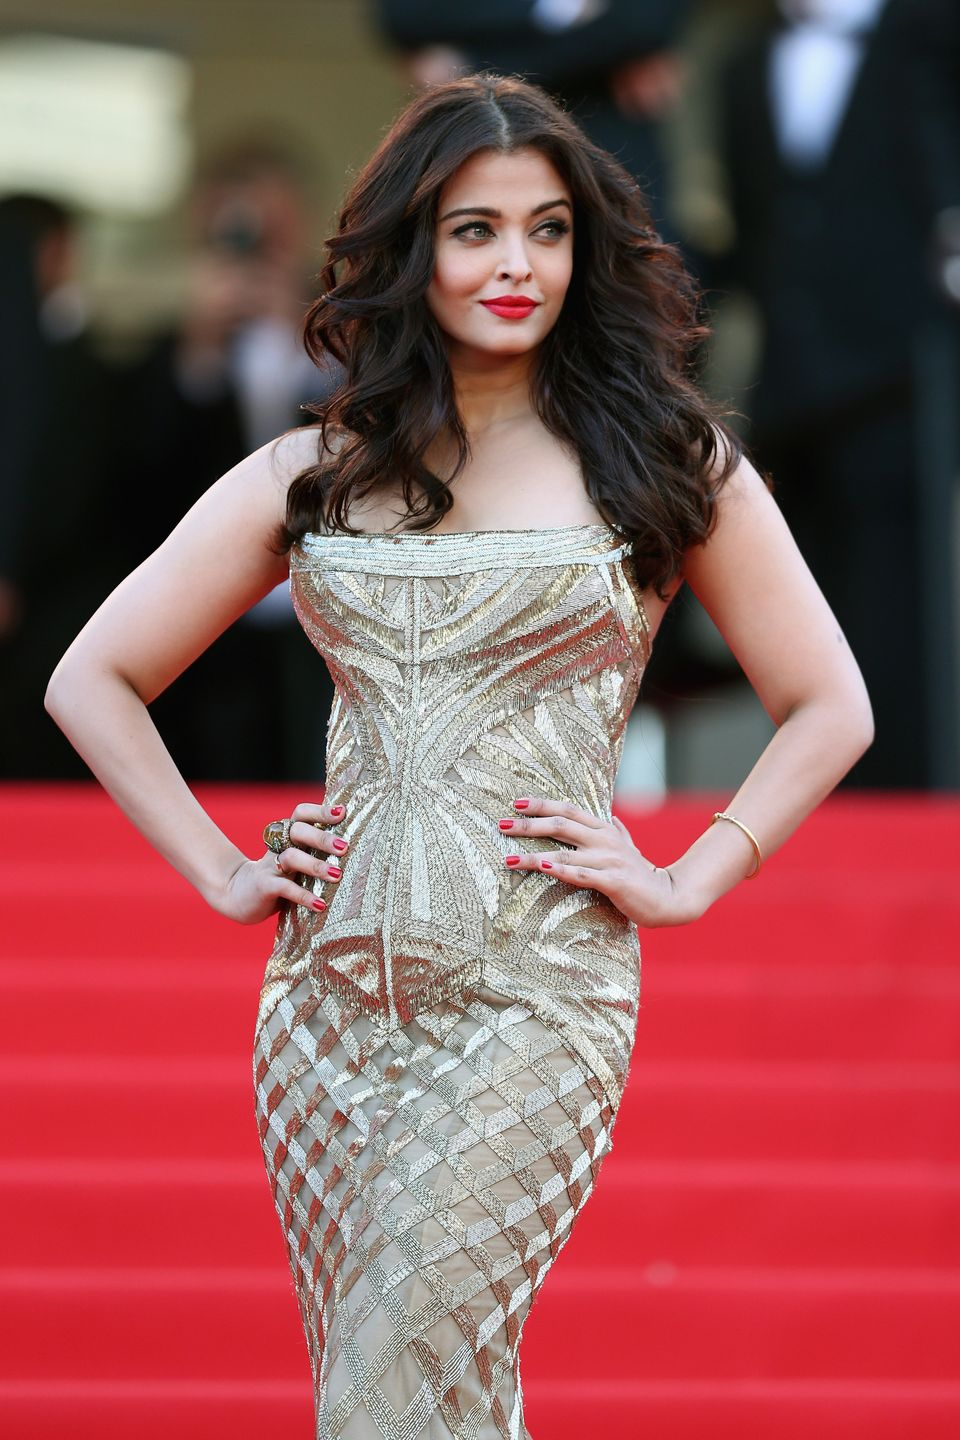 CANNES, FRANCE - MAY 20:  Aishwarya Rai attends the 'Two Days, One Night' (Deux Jours, Une Nuit) premiere during the 67th Ann